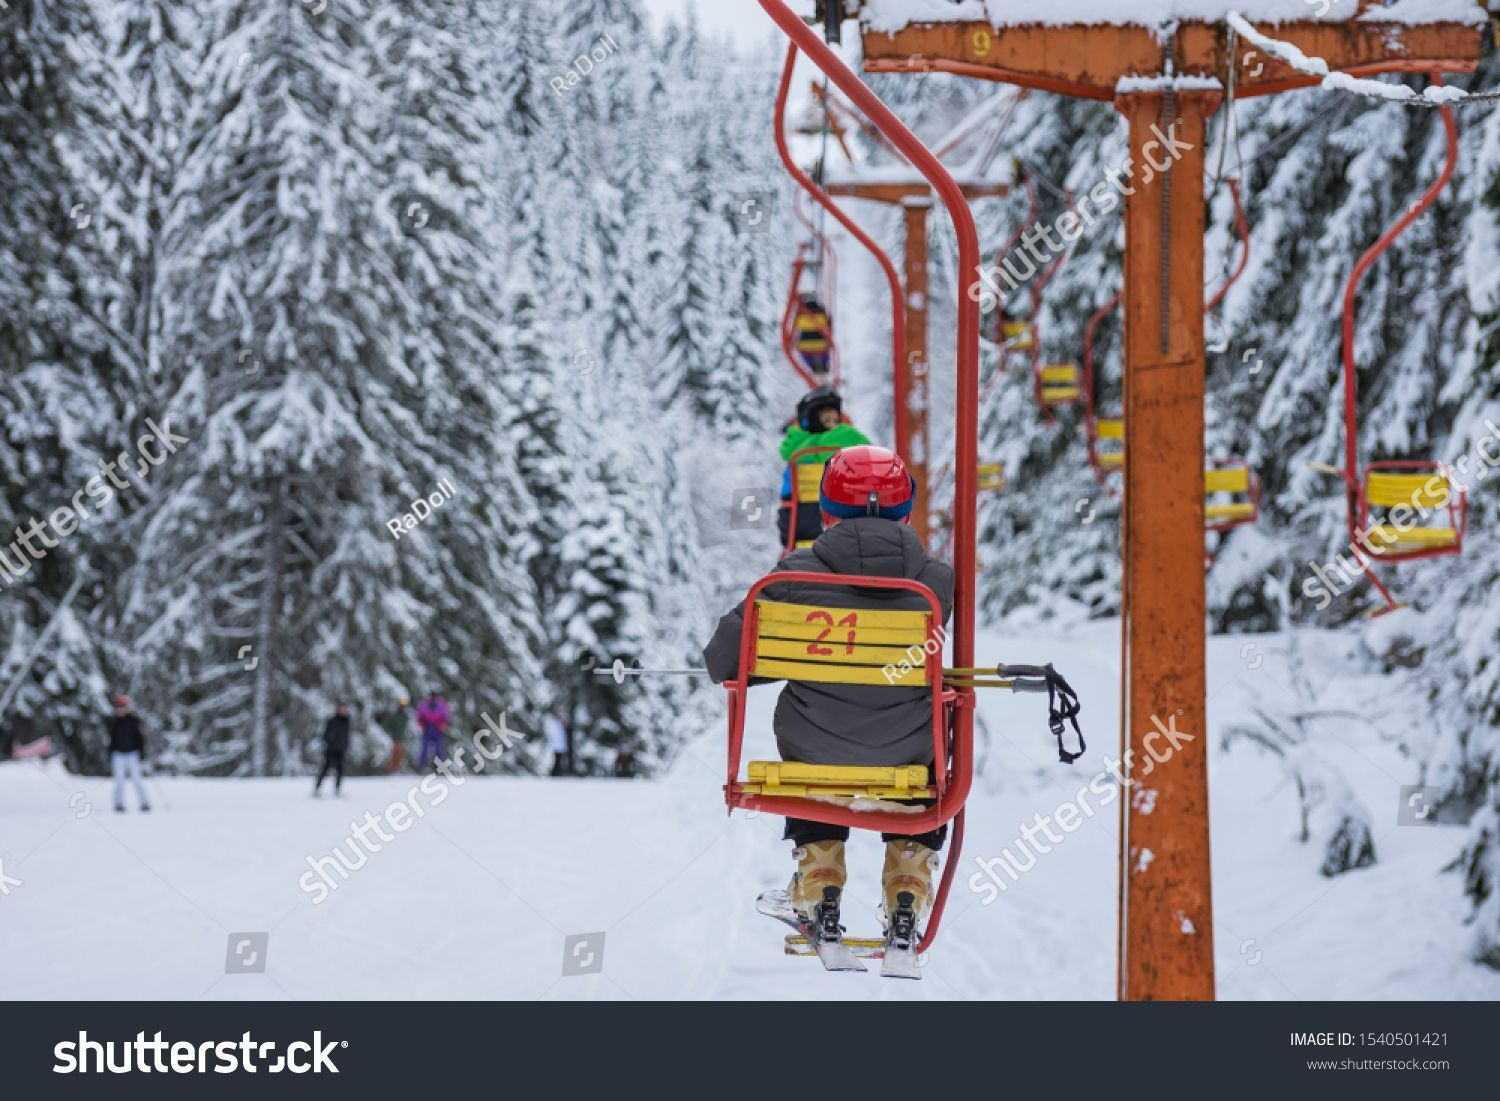 Skiers are sitting at old fashioned one chair ski lift